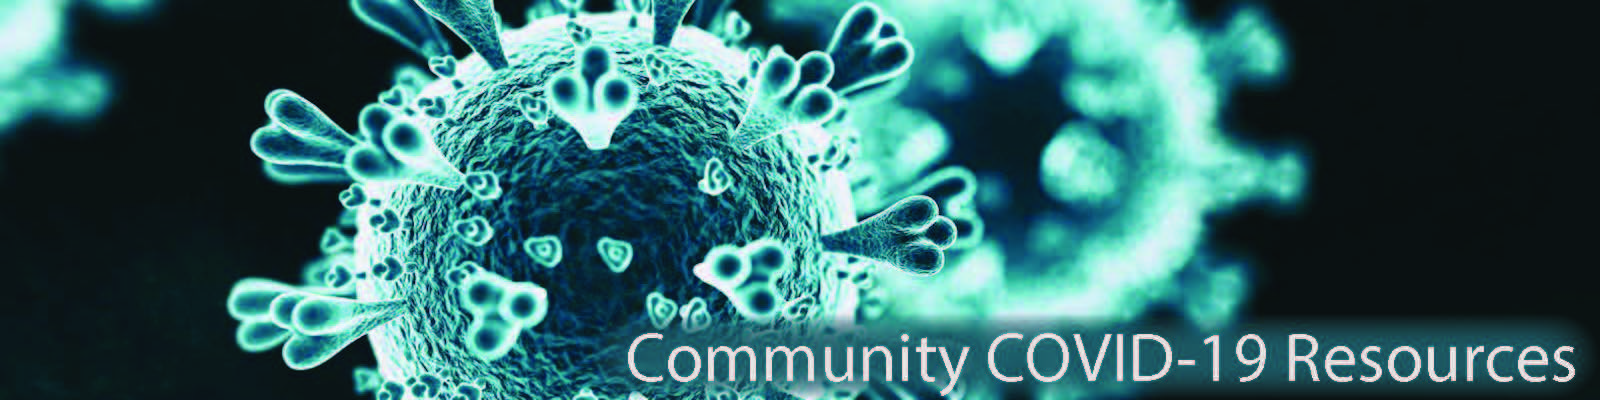 Community COVID-19 Resources Header Image